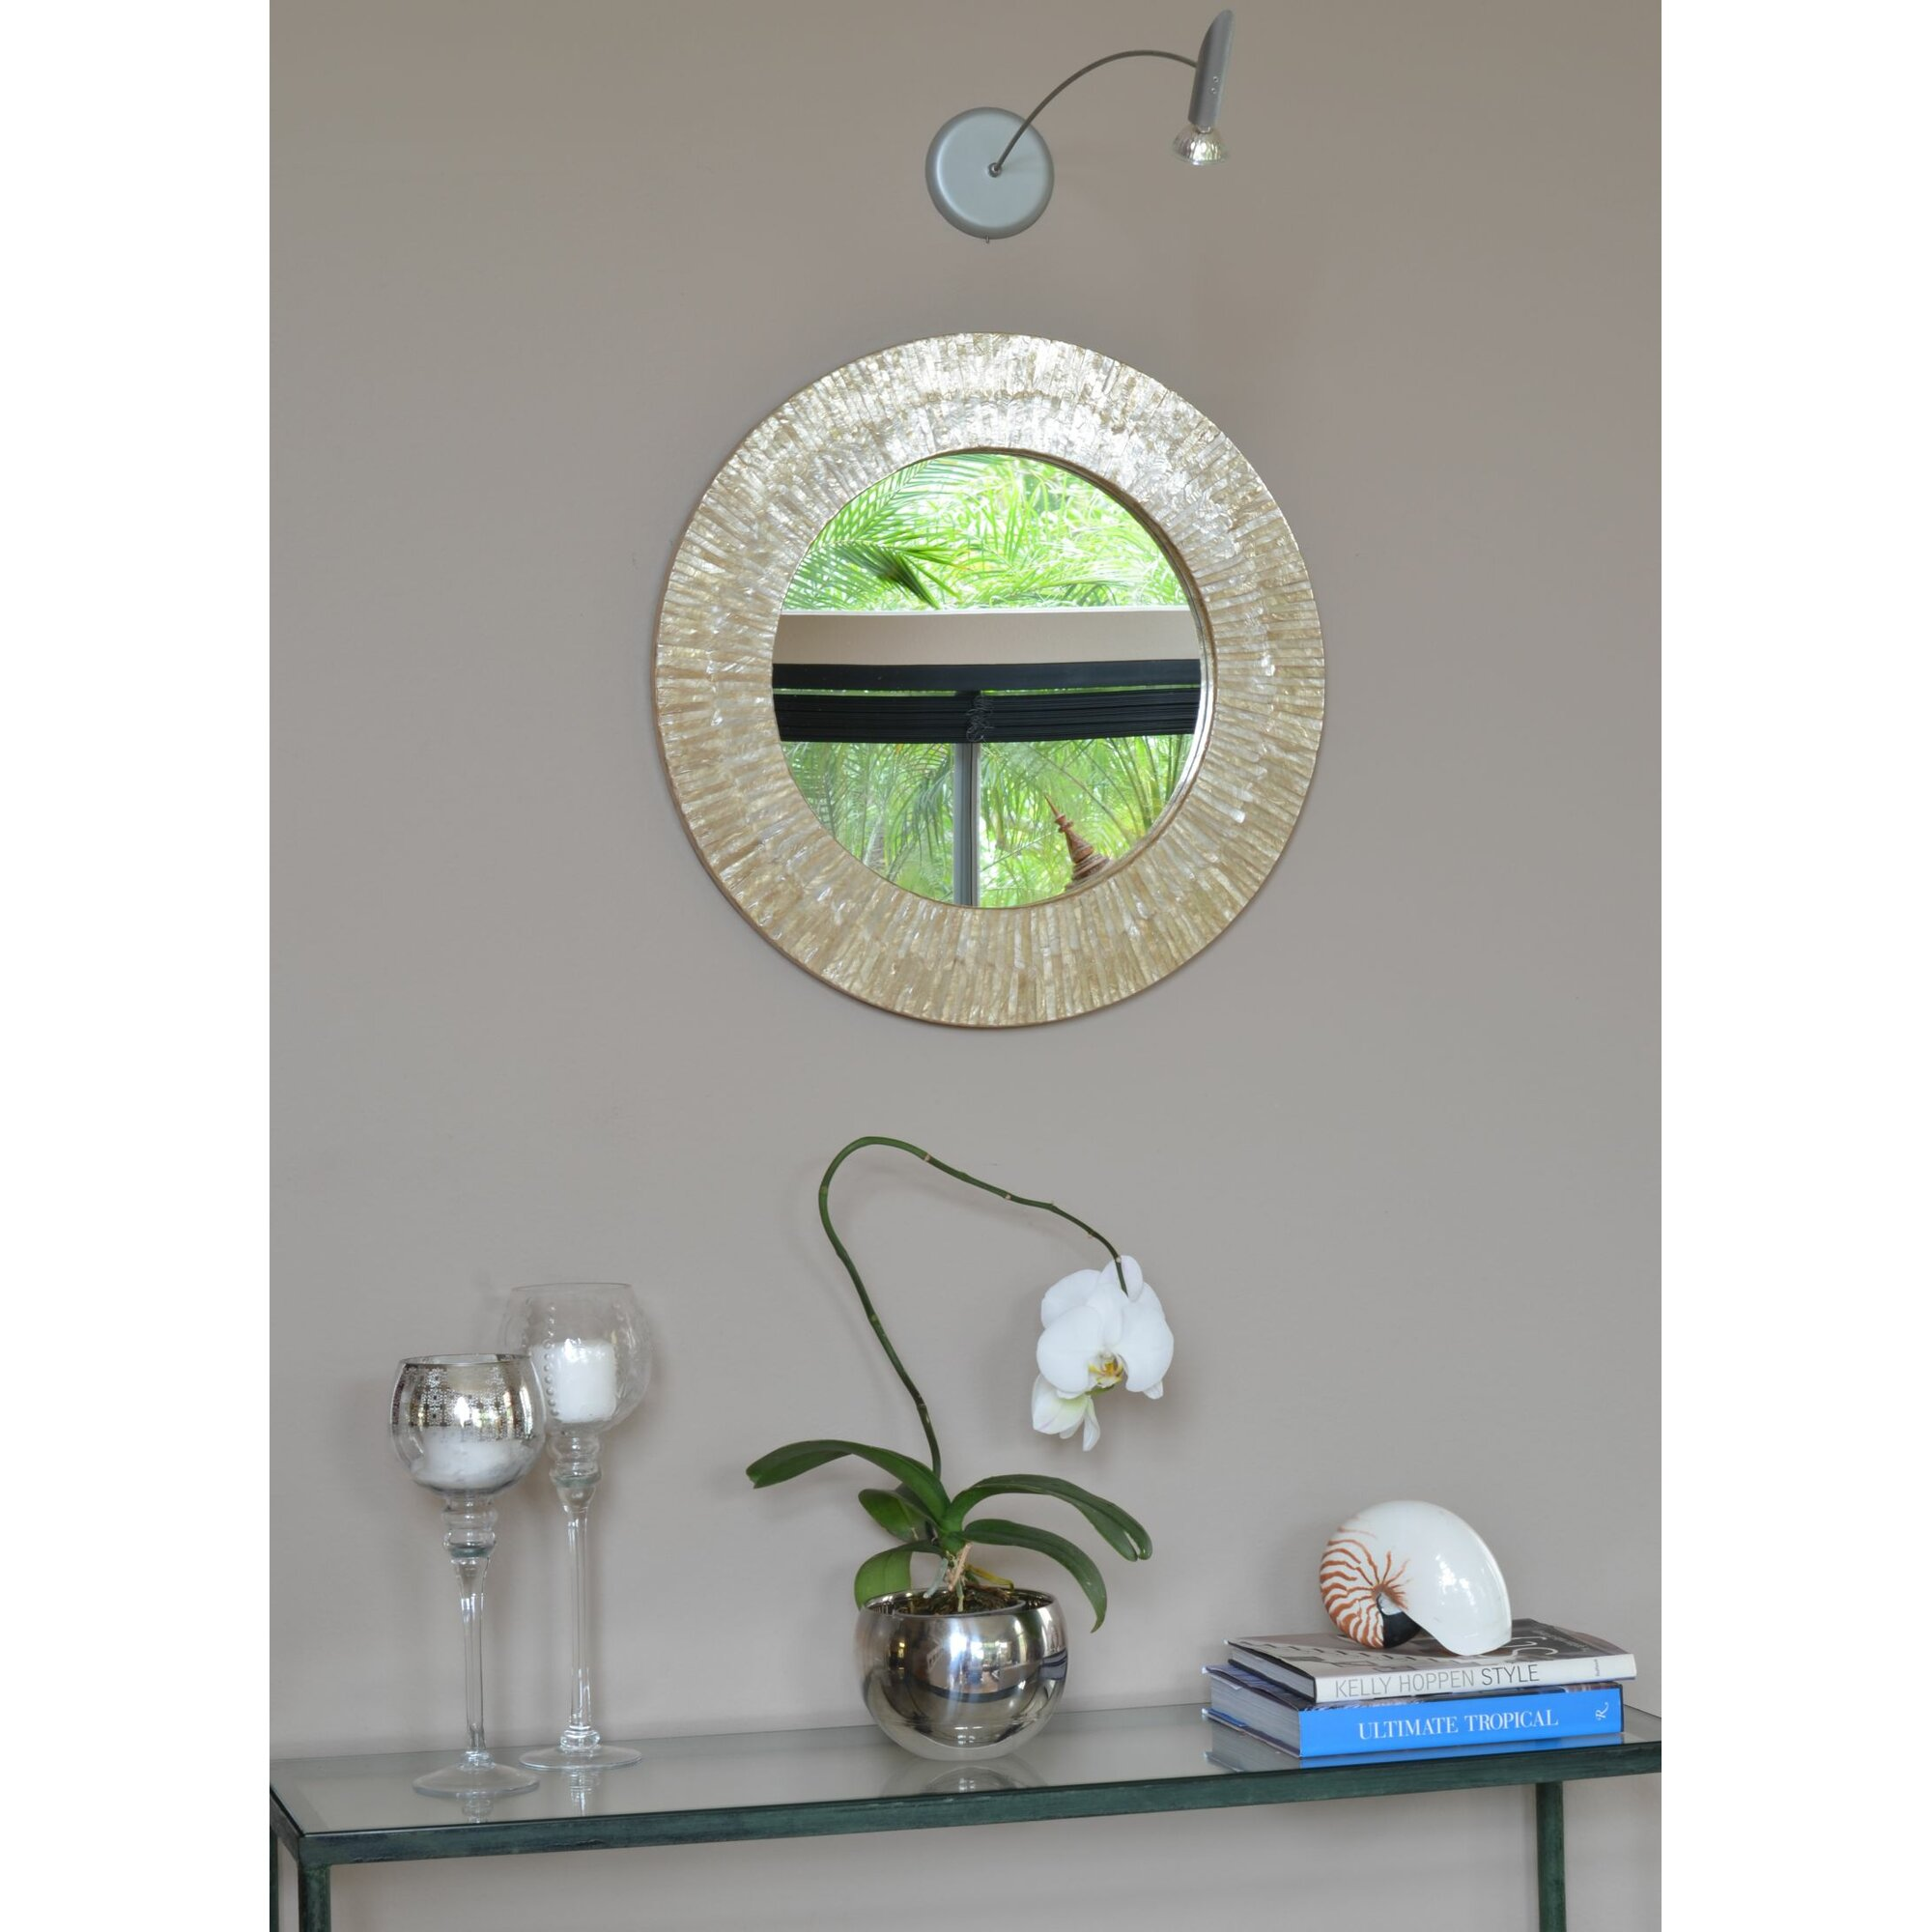 Wire Capiz Sunburst Wall Mirror - Cool capiz seashell sunray wall mirror with capiz mirror